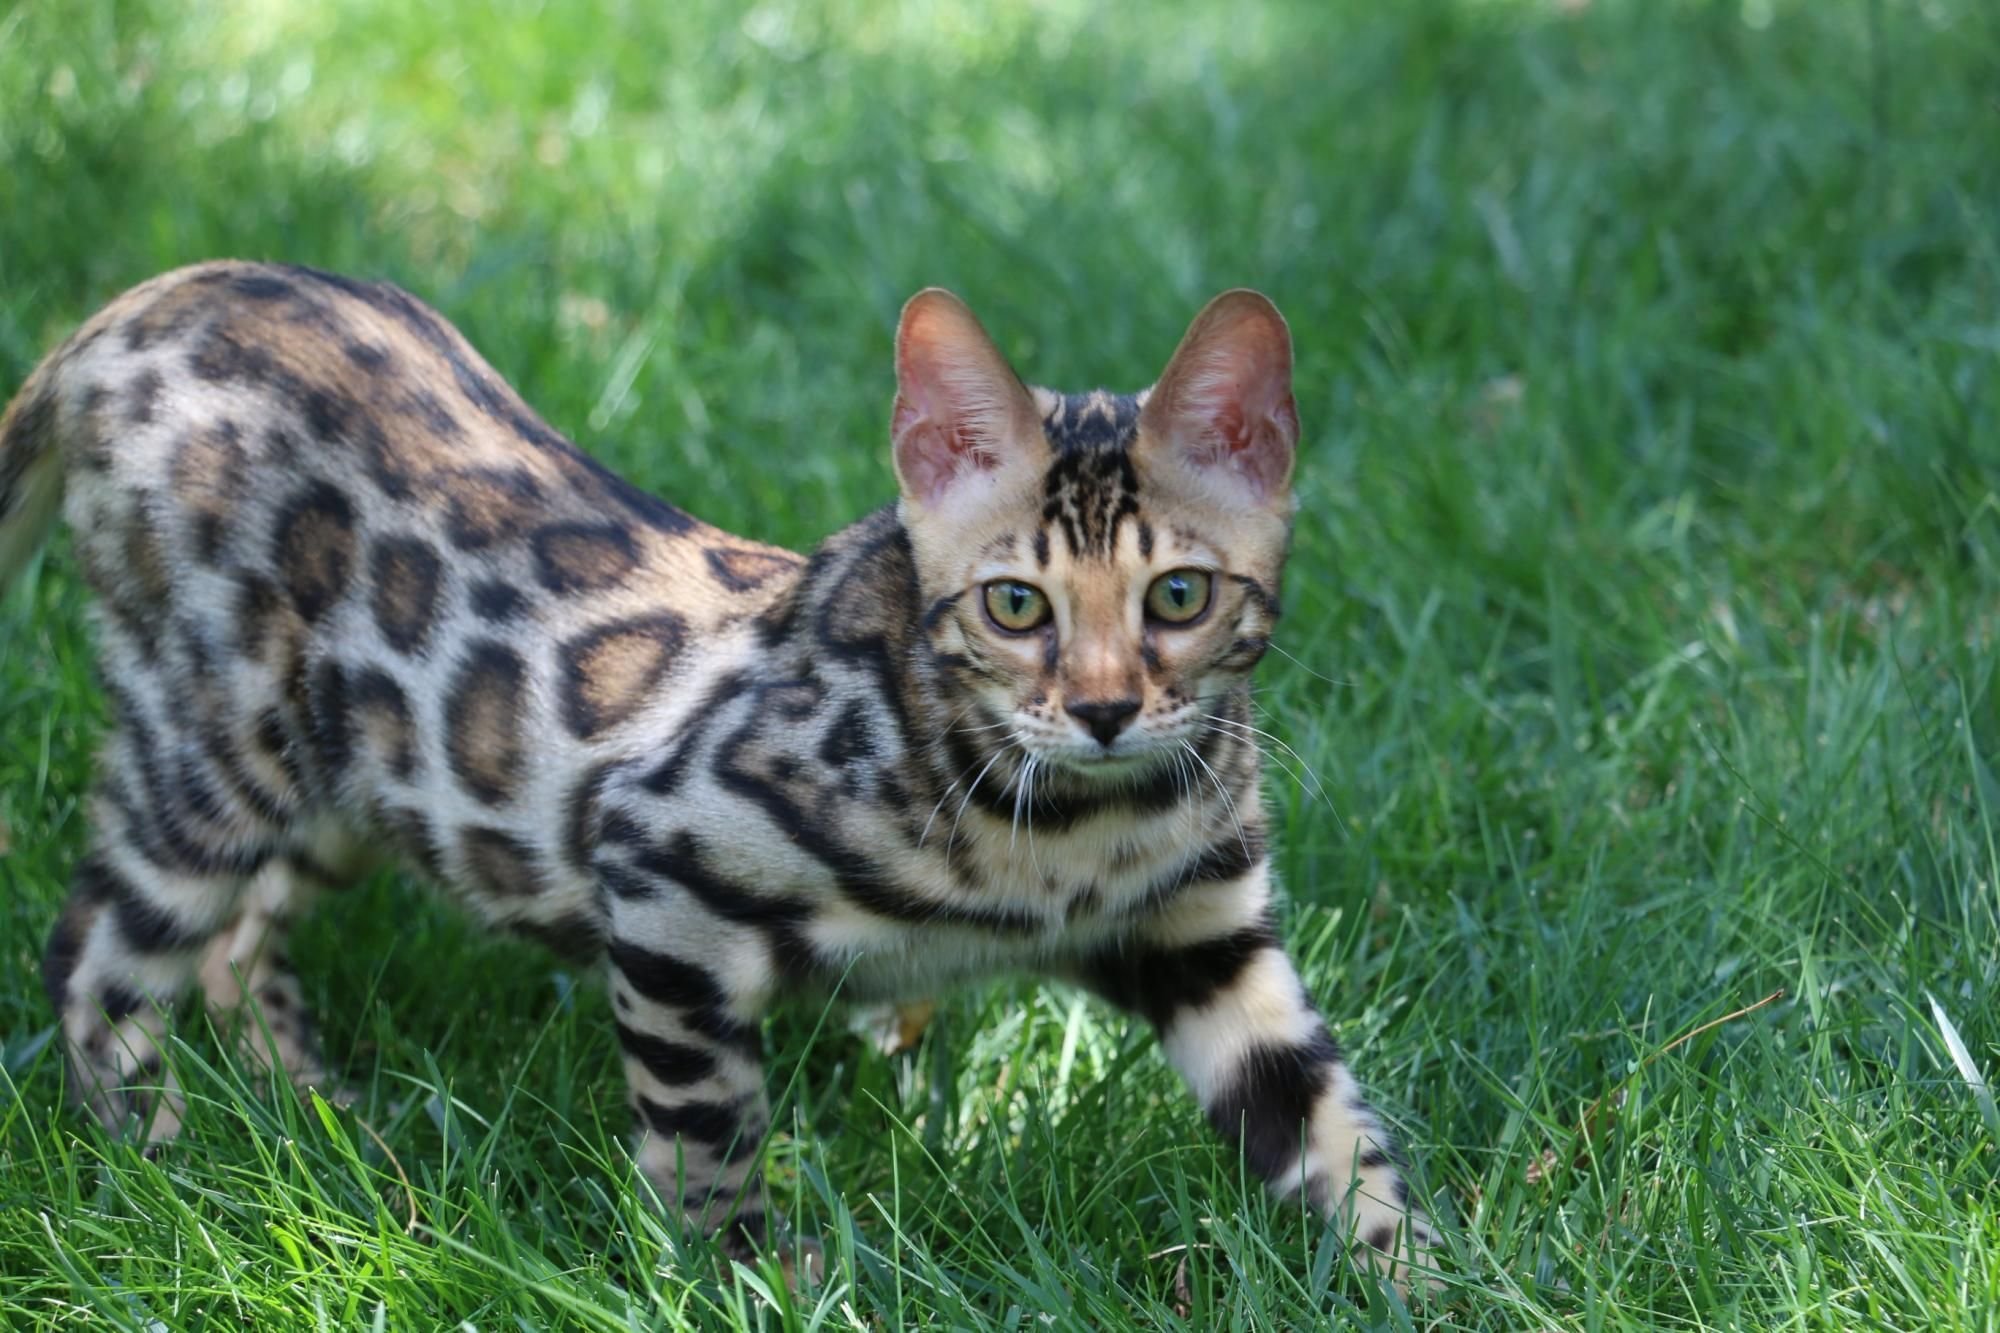 Bengal Cats For Sale Bengal Kittens Bengal For Sale Kittens For Sale Bengal Kittens Denver Co Bengal Cat Bengal Kitten Bengal Cat Facts